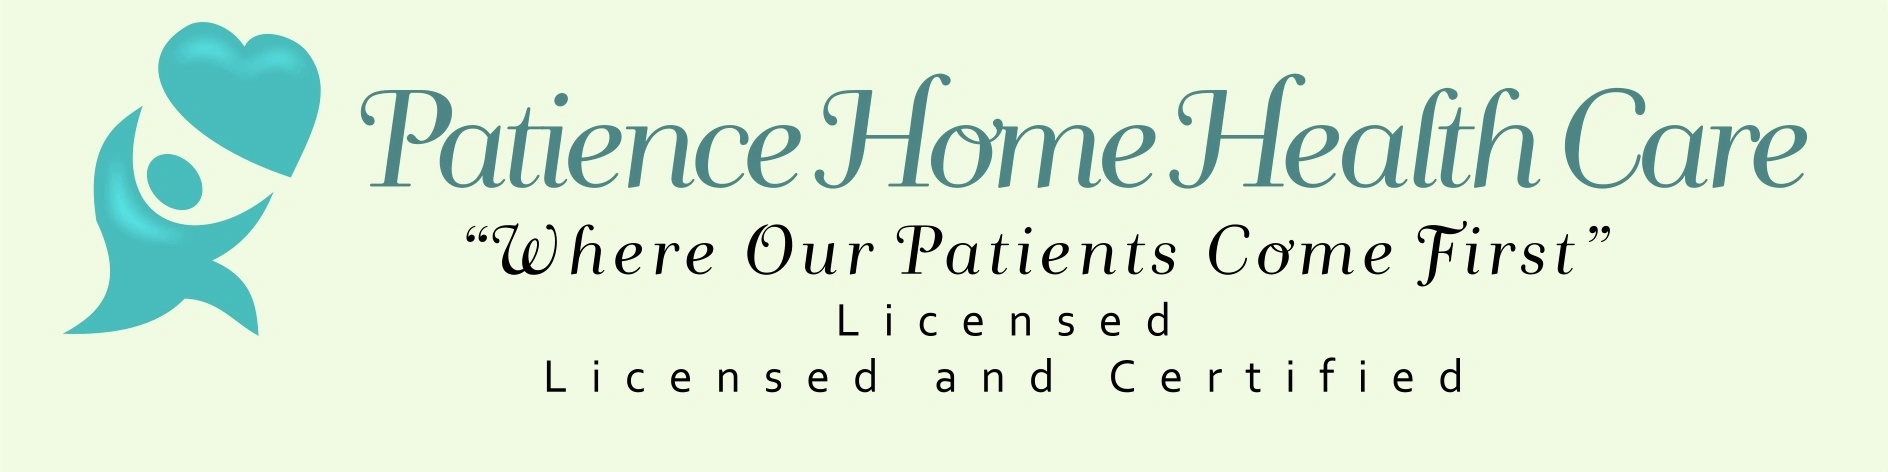 Patience Home Health Care